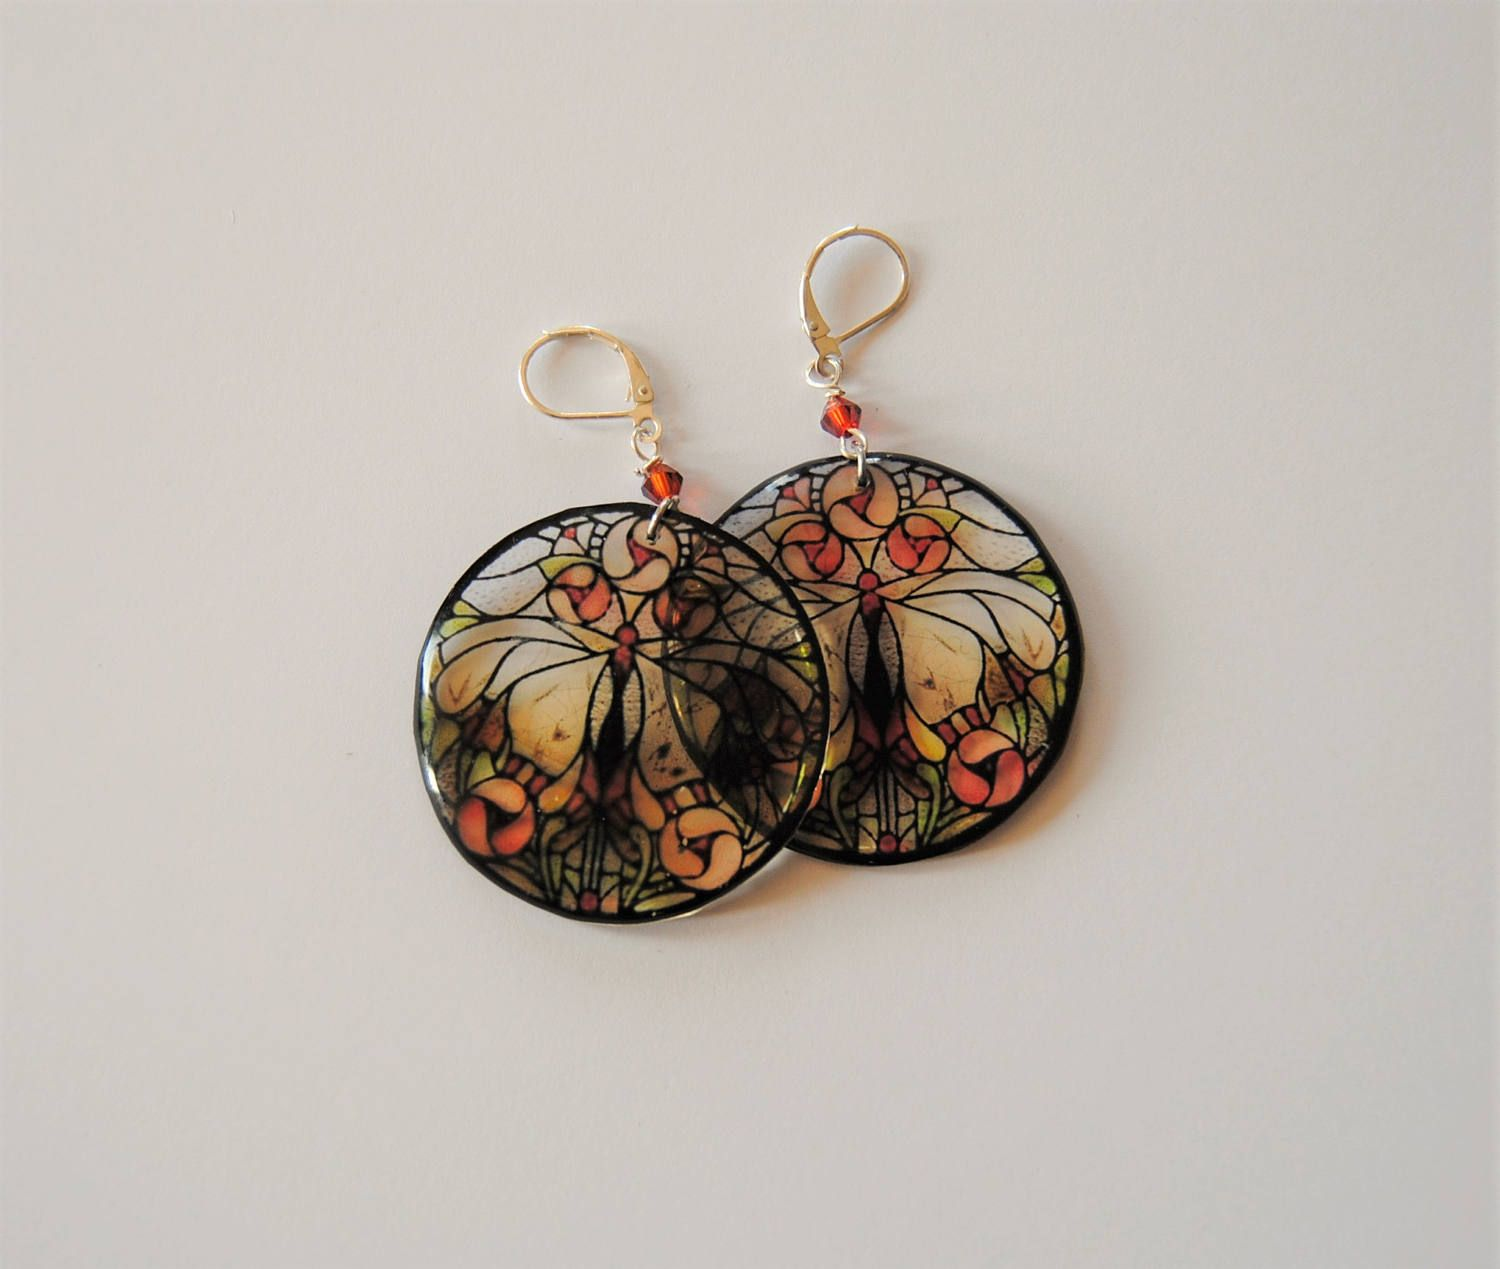 Erfly Stained Gl Style Boho Chic Inspirational Earrings Dangle Resin